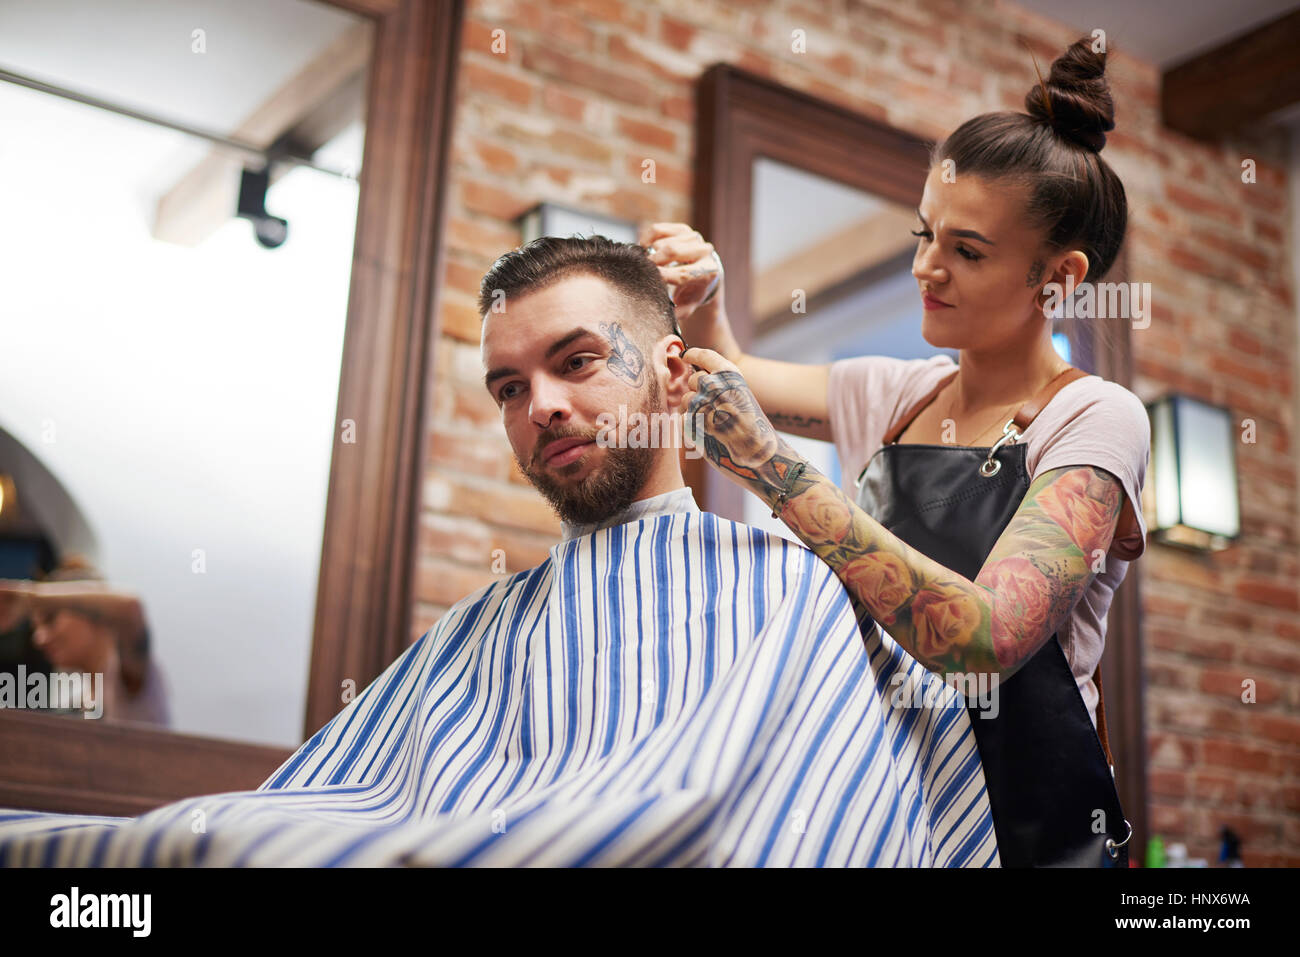 Hairdresser cutting customer's hair - Stock Image